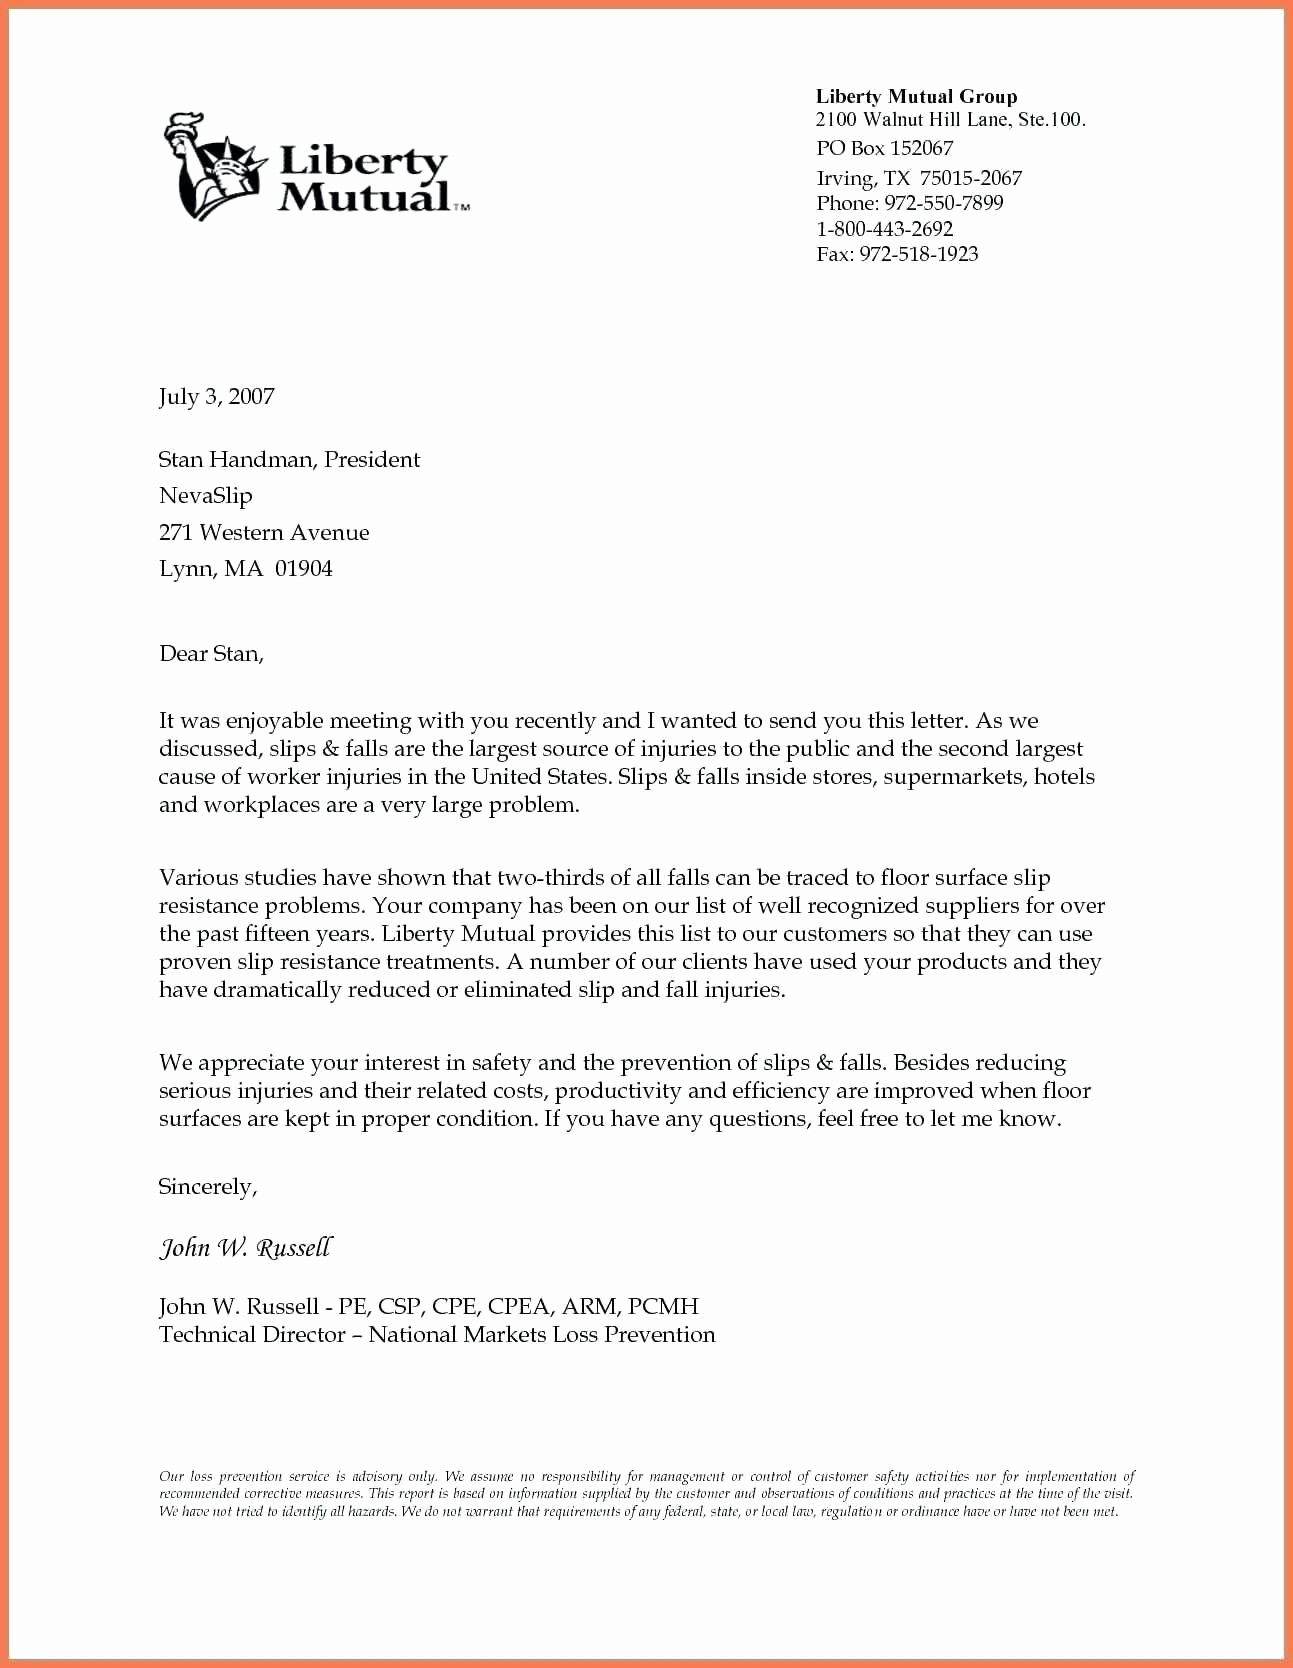 Formal Business Letter format Template Inspirational formal Business Letter Templates 35 formal Business